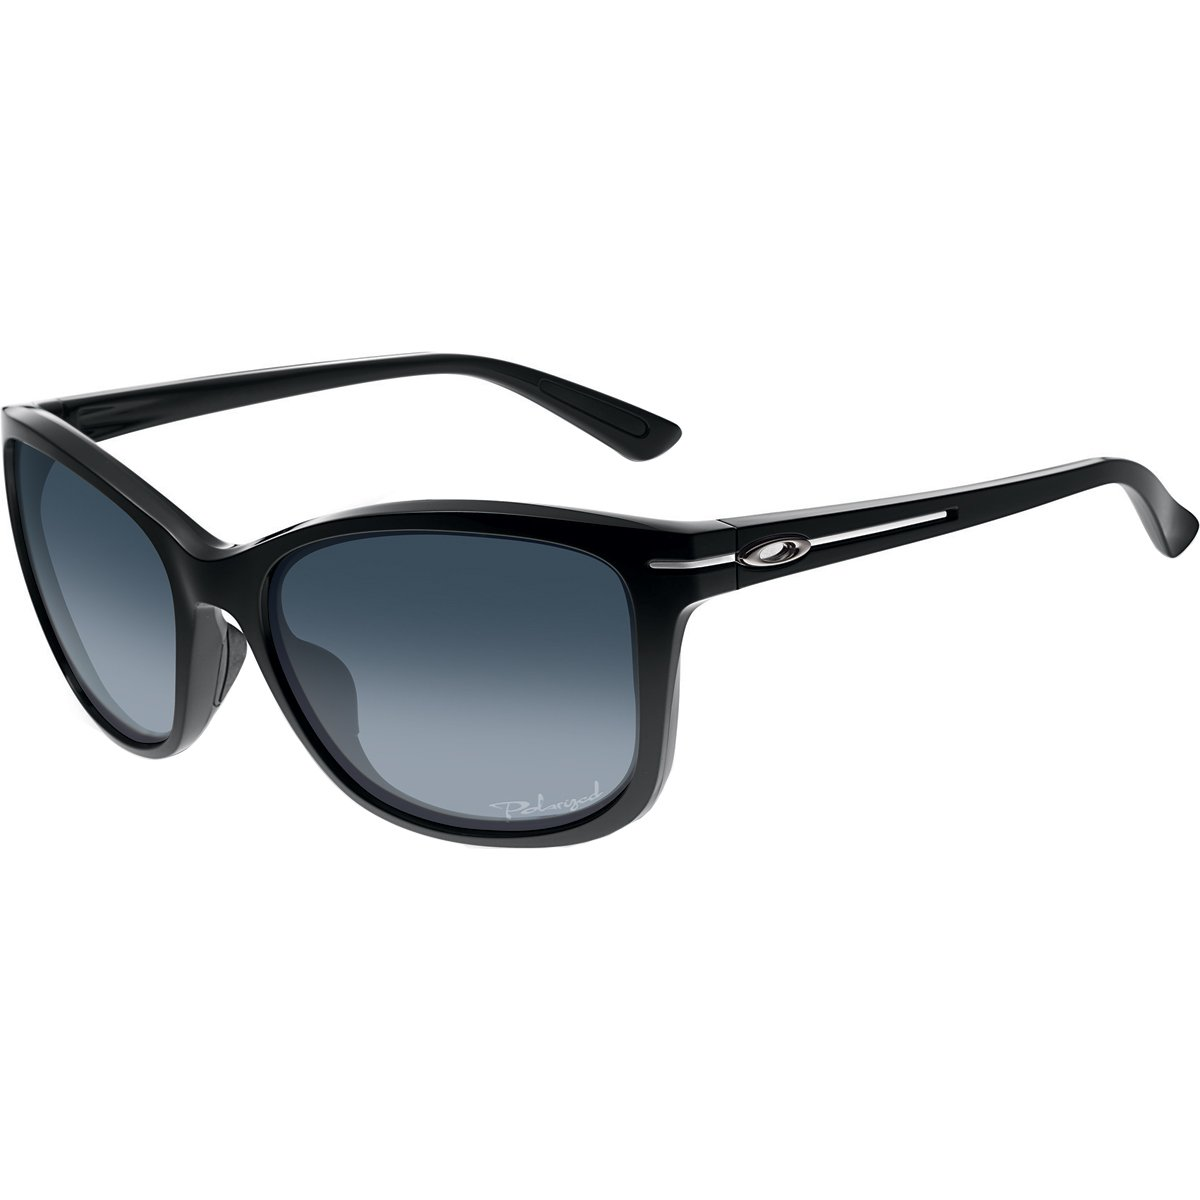 Oakley Women's OO9232 Drop In Cat Eye Sunglasses, Polished Black/Grey Gradient Polarized, 58 mm by Oakley